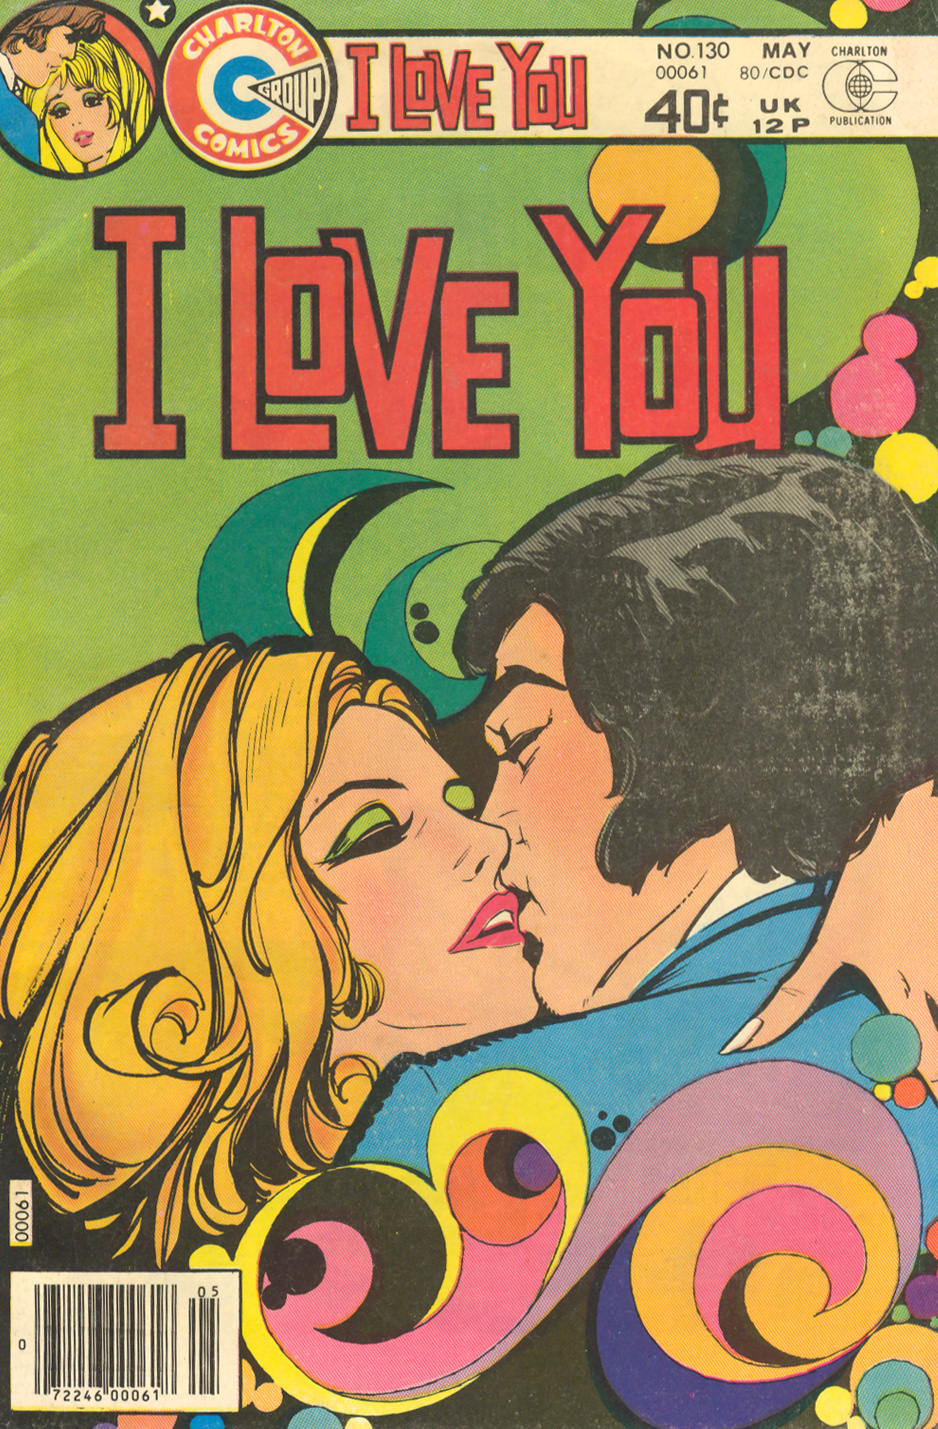 I Love You #130 (May 1980), originally from My Only Love #3 (November 1975)